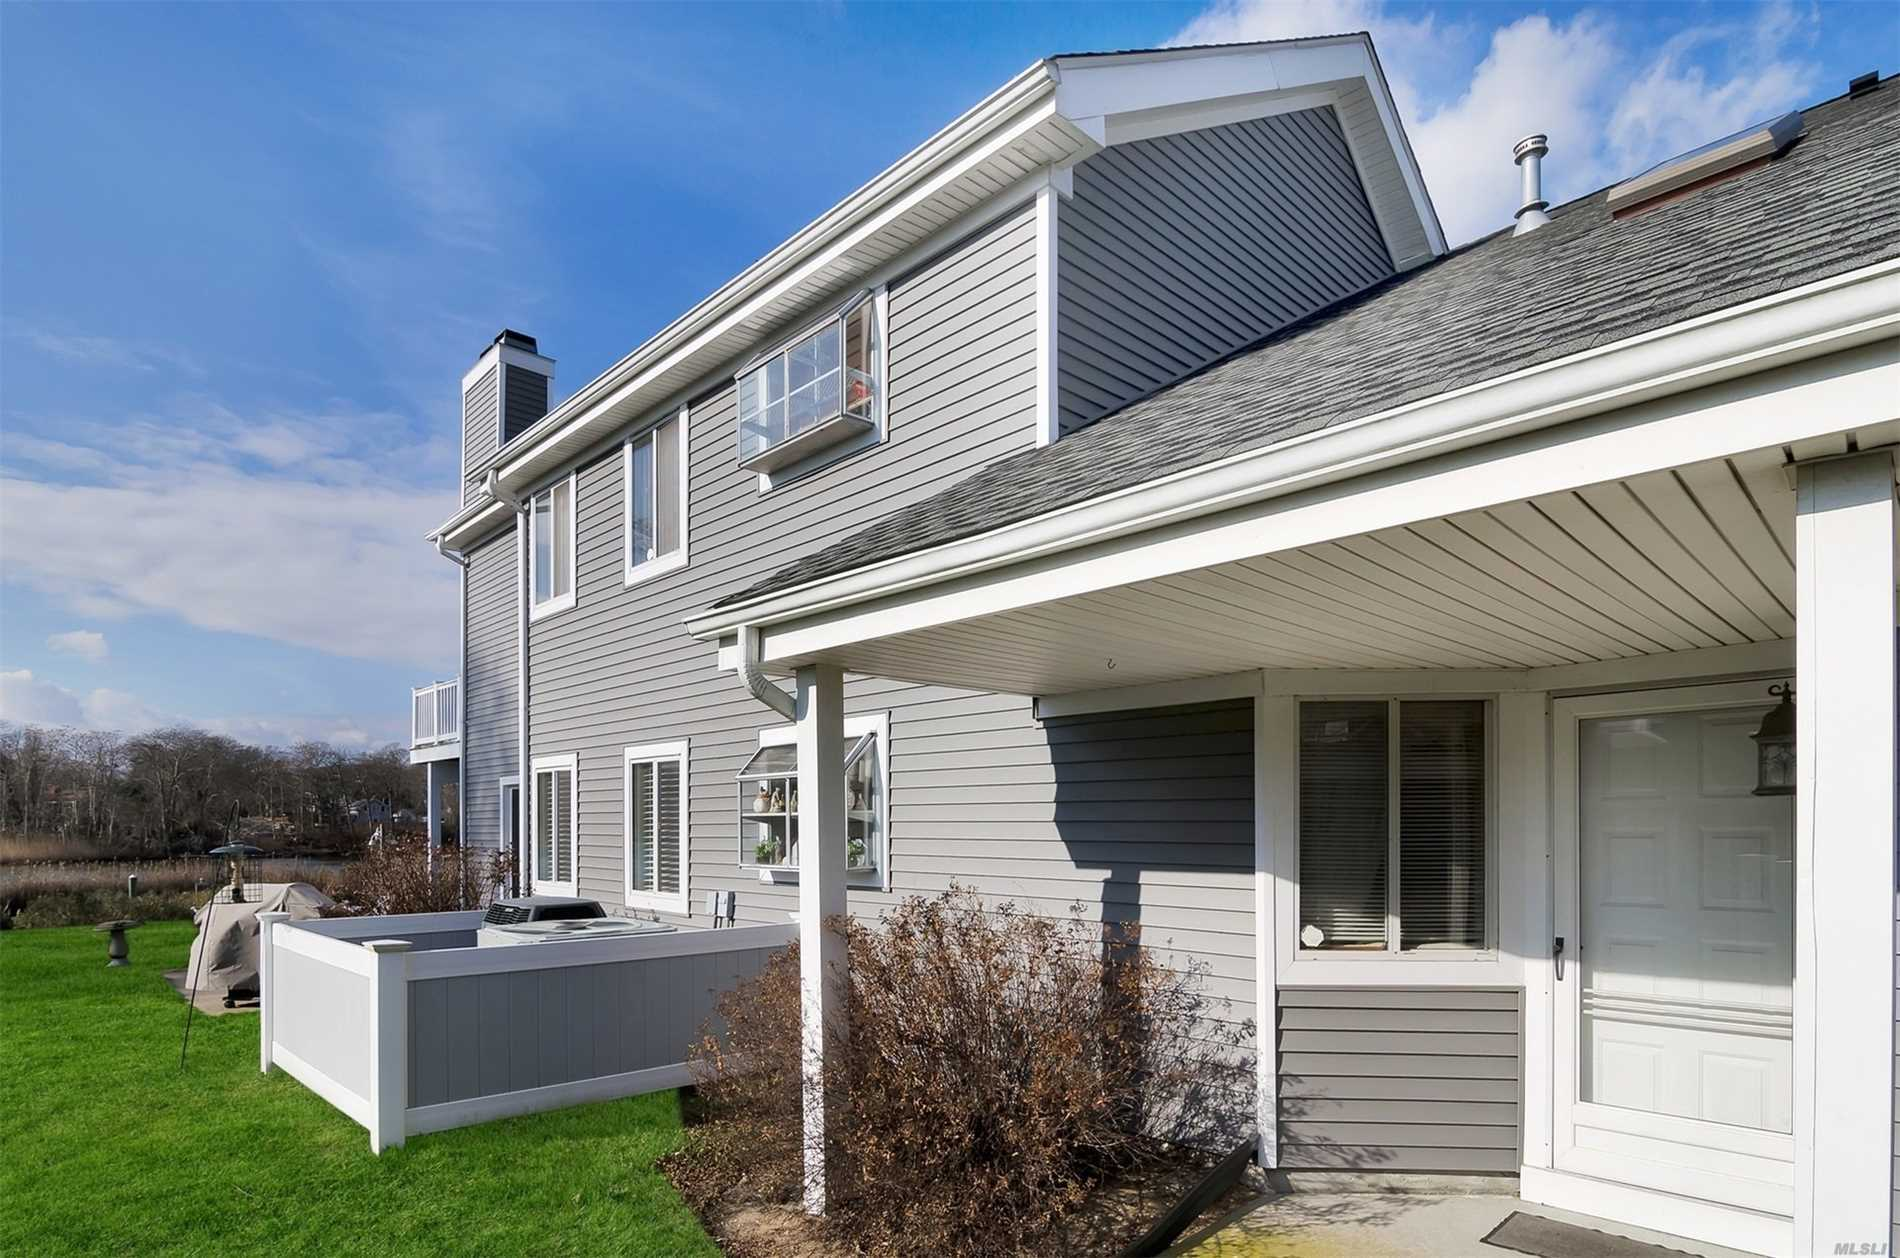 359 Seabreeze Ct - Moriches, New York